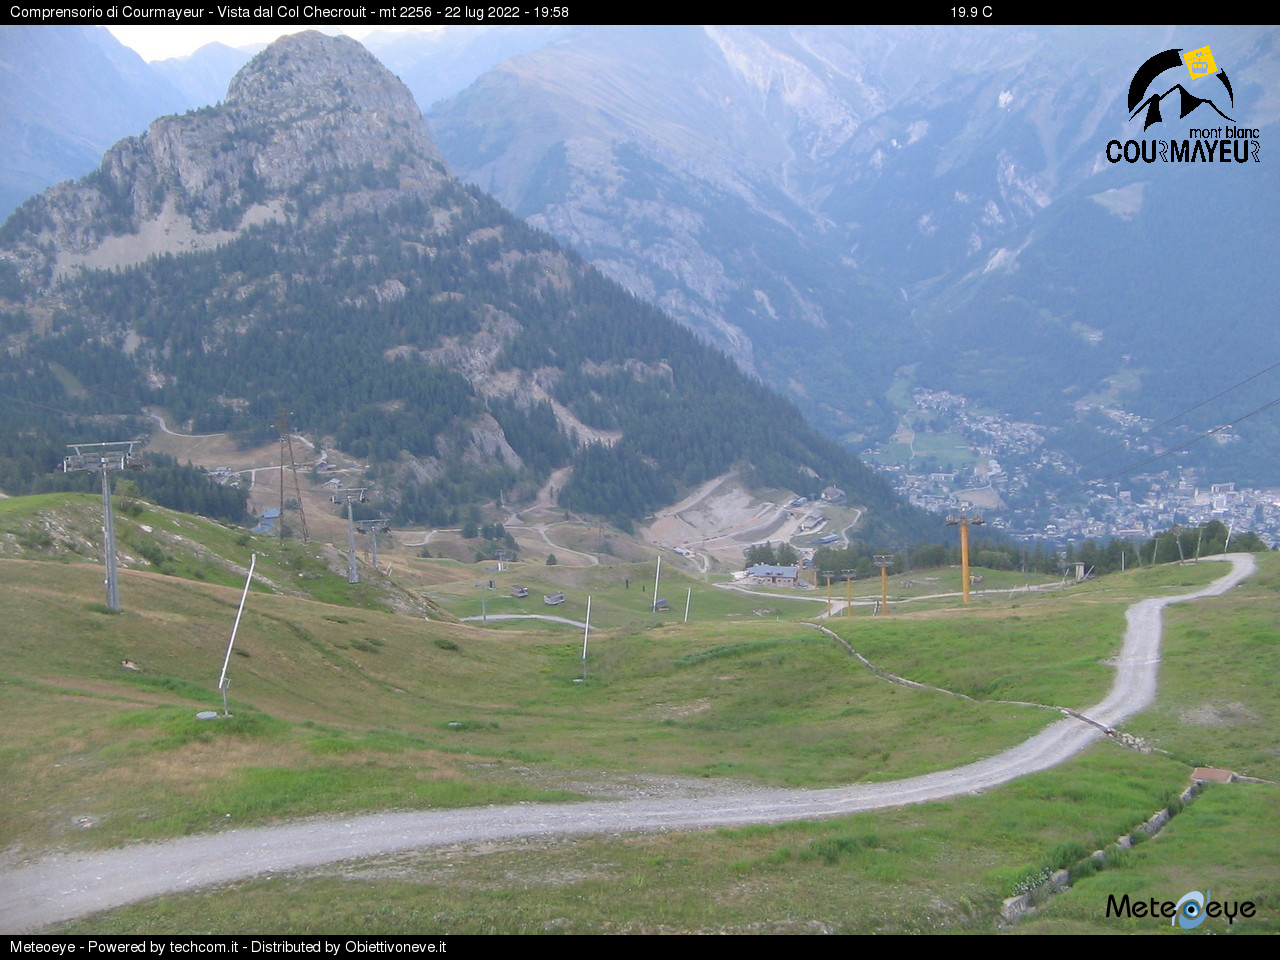 Webcam Neve Courmayeur